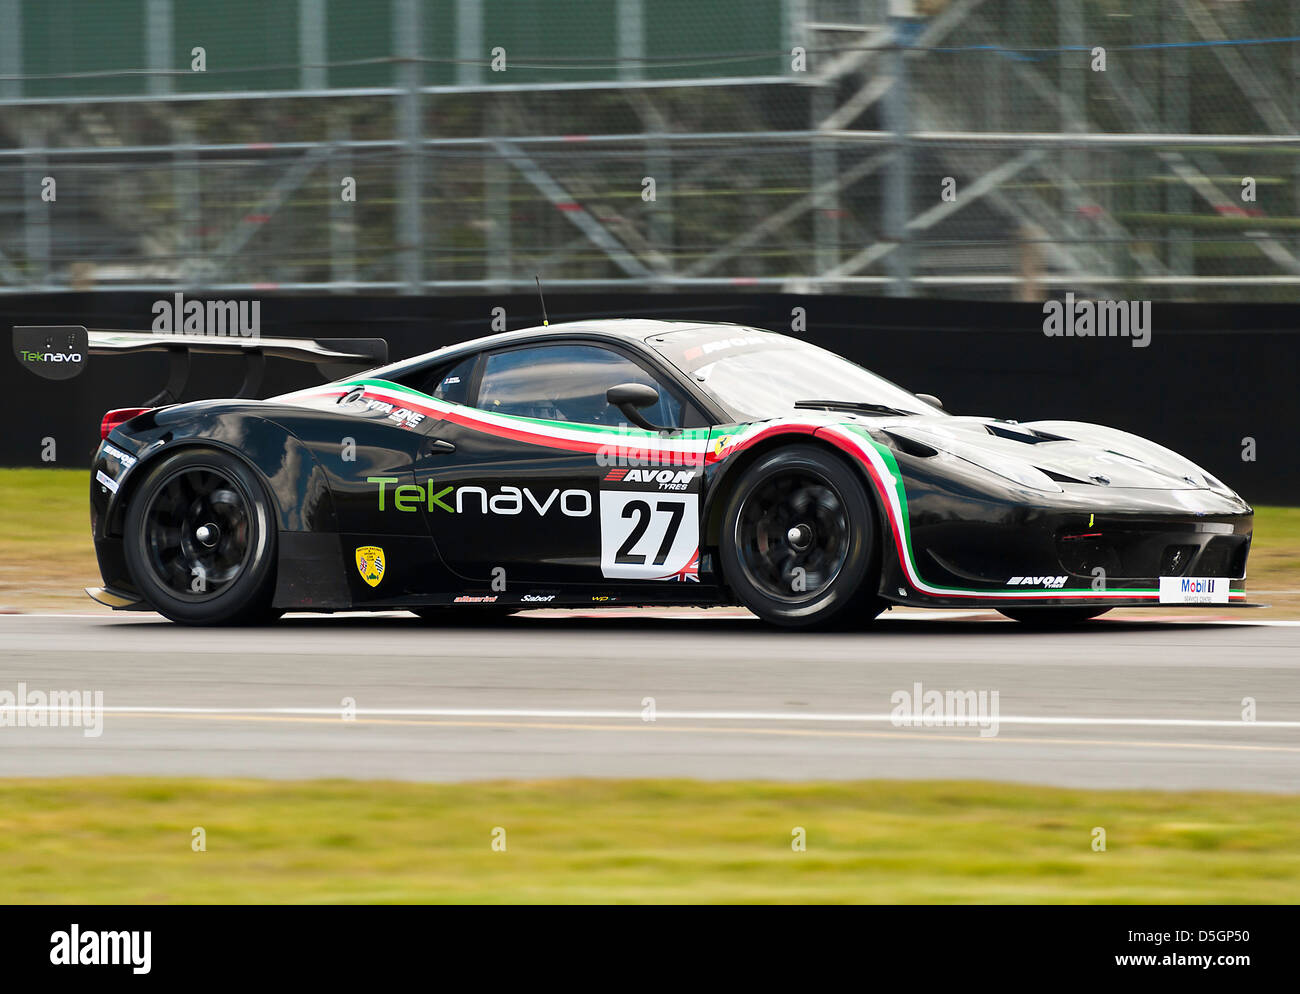 Ferrari 458 Italia GT3 Sports Car In British GT Championship At Oulton Park  Motor Racing Circuit Cheshire England United Kingdom